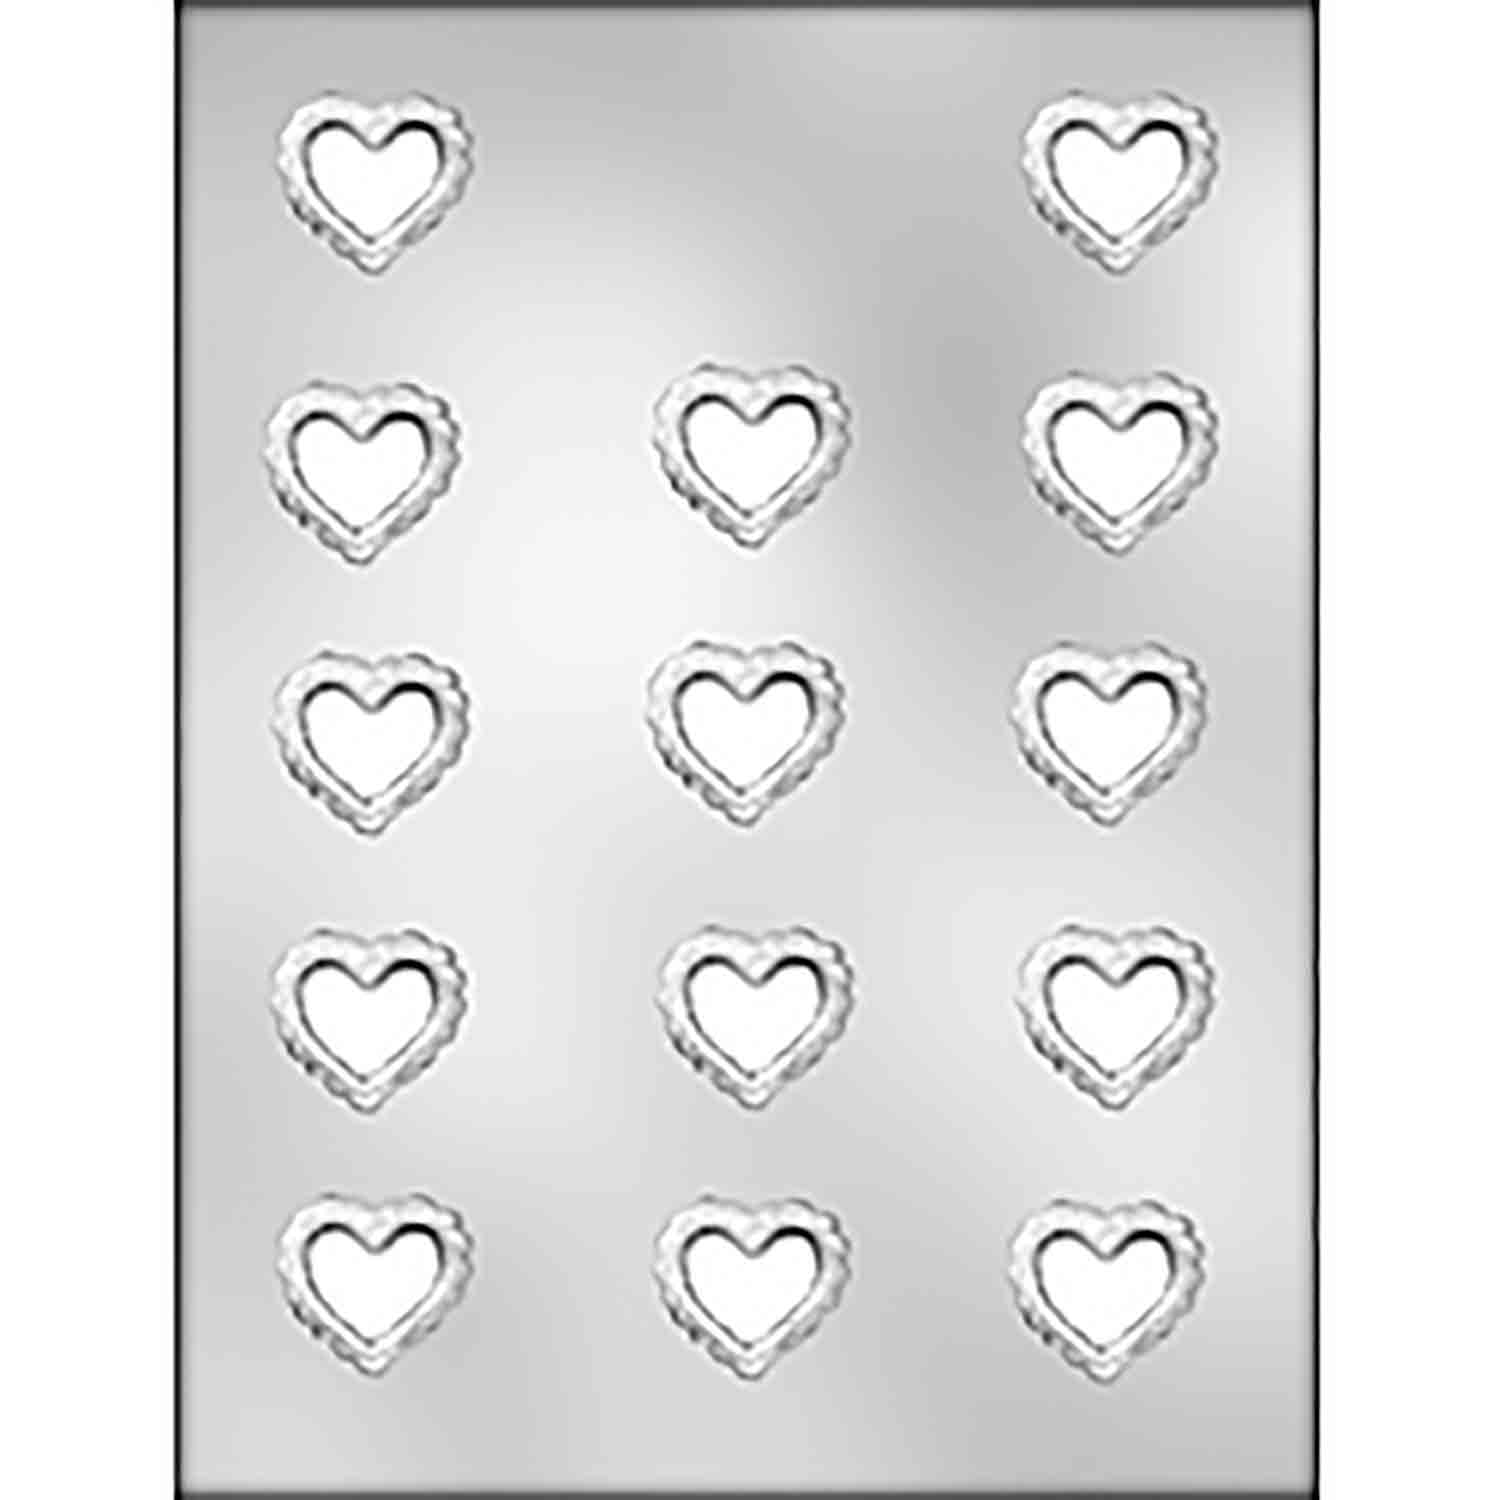 Filigree Heart Chocolate Candy Mold